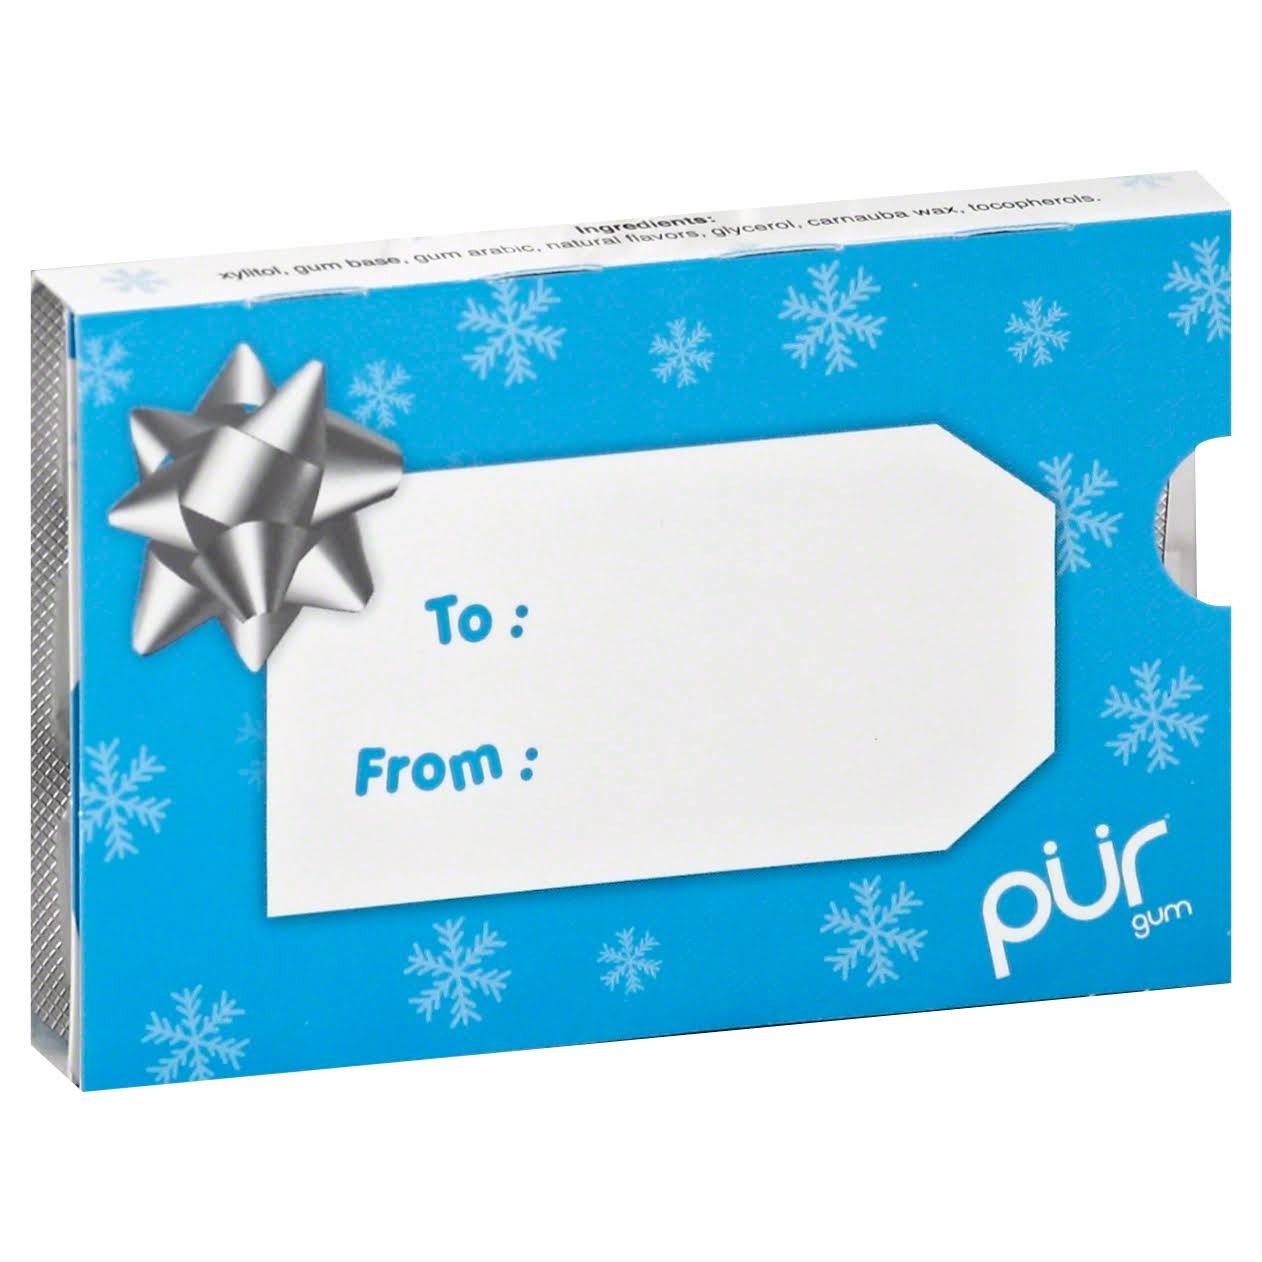 PUR Aspartame Free Gum - Peppermint, 6 Packs